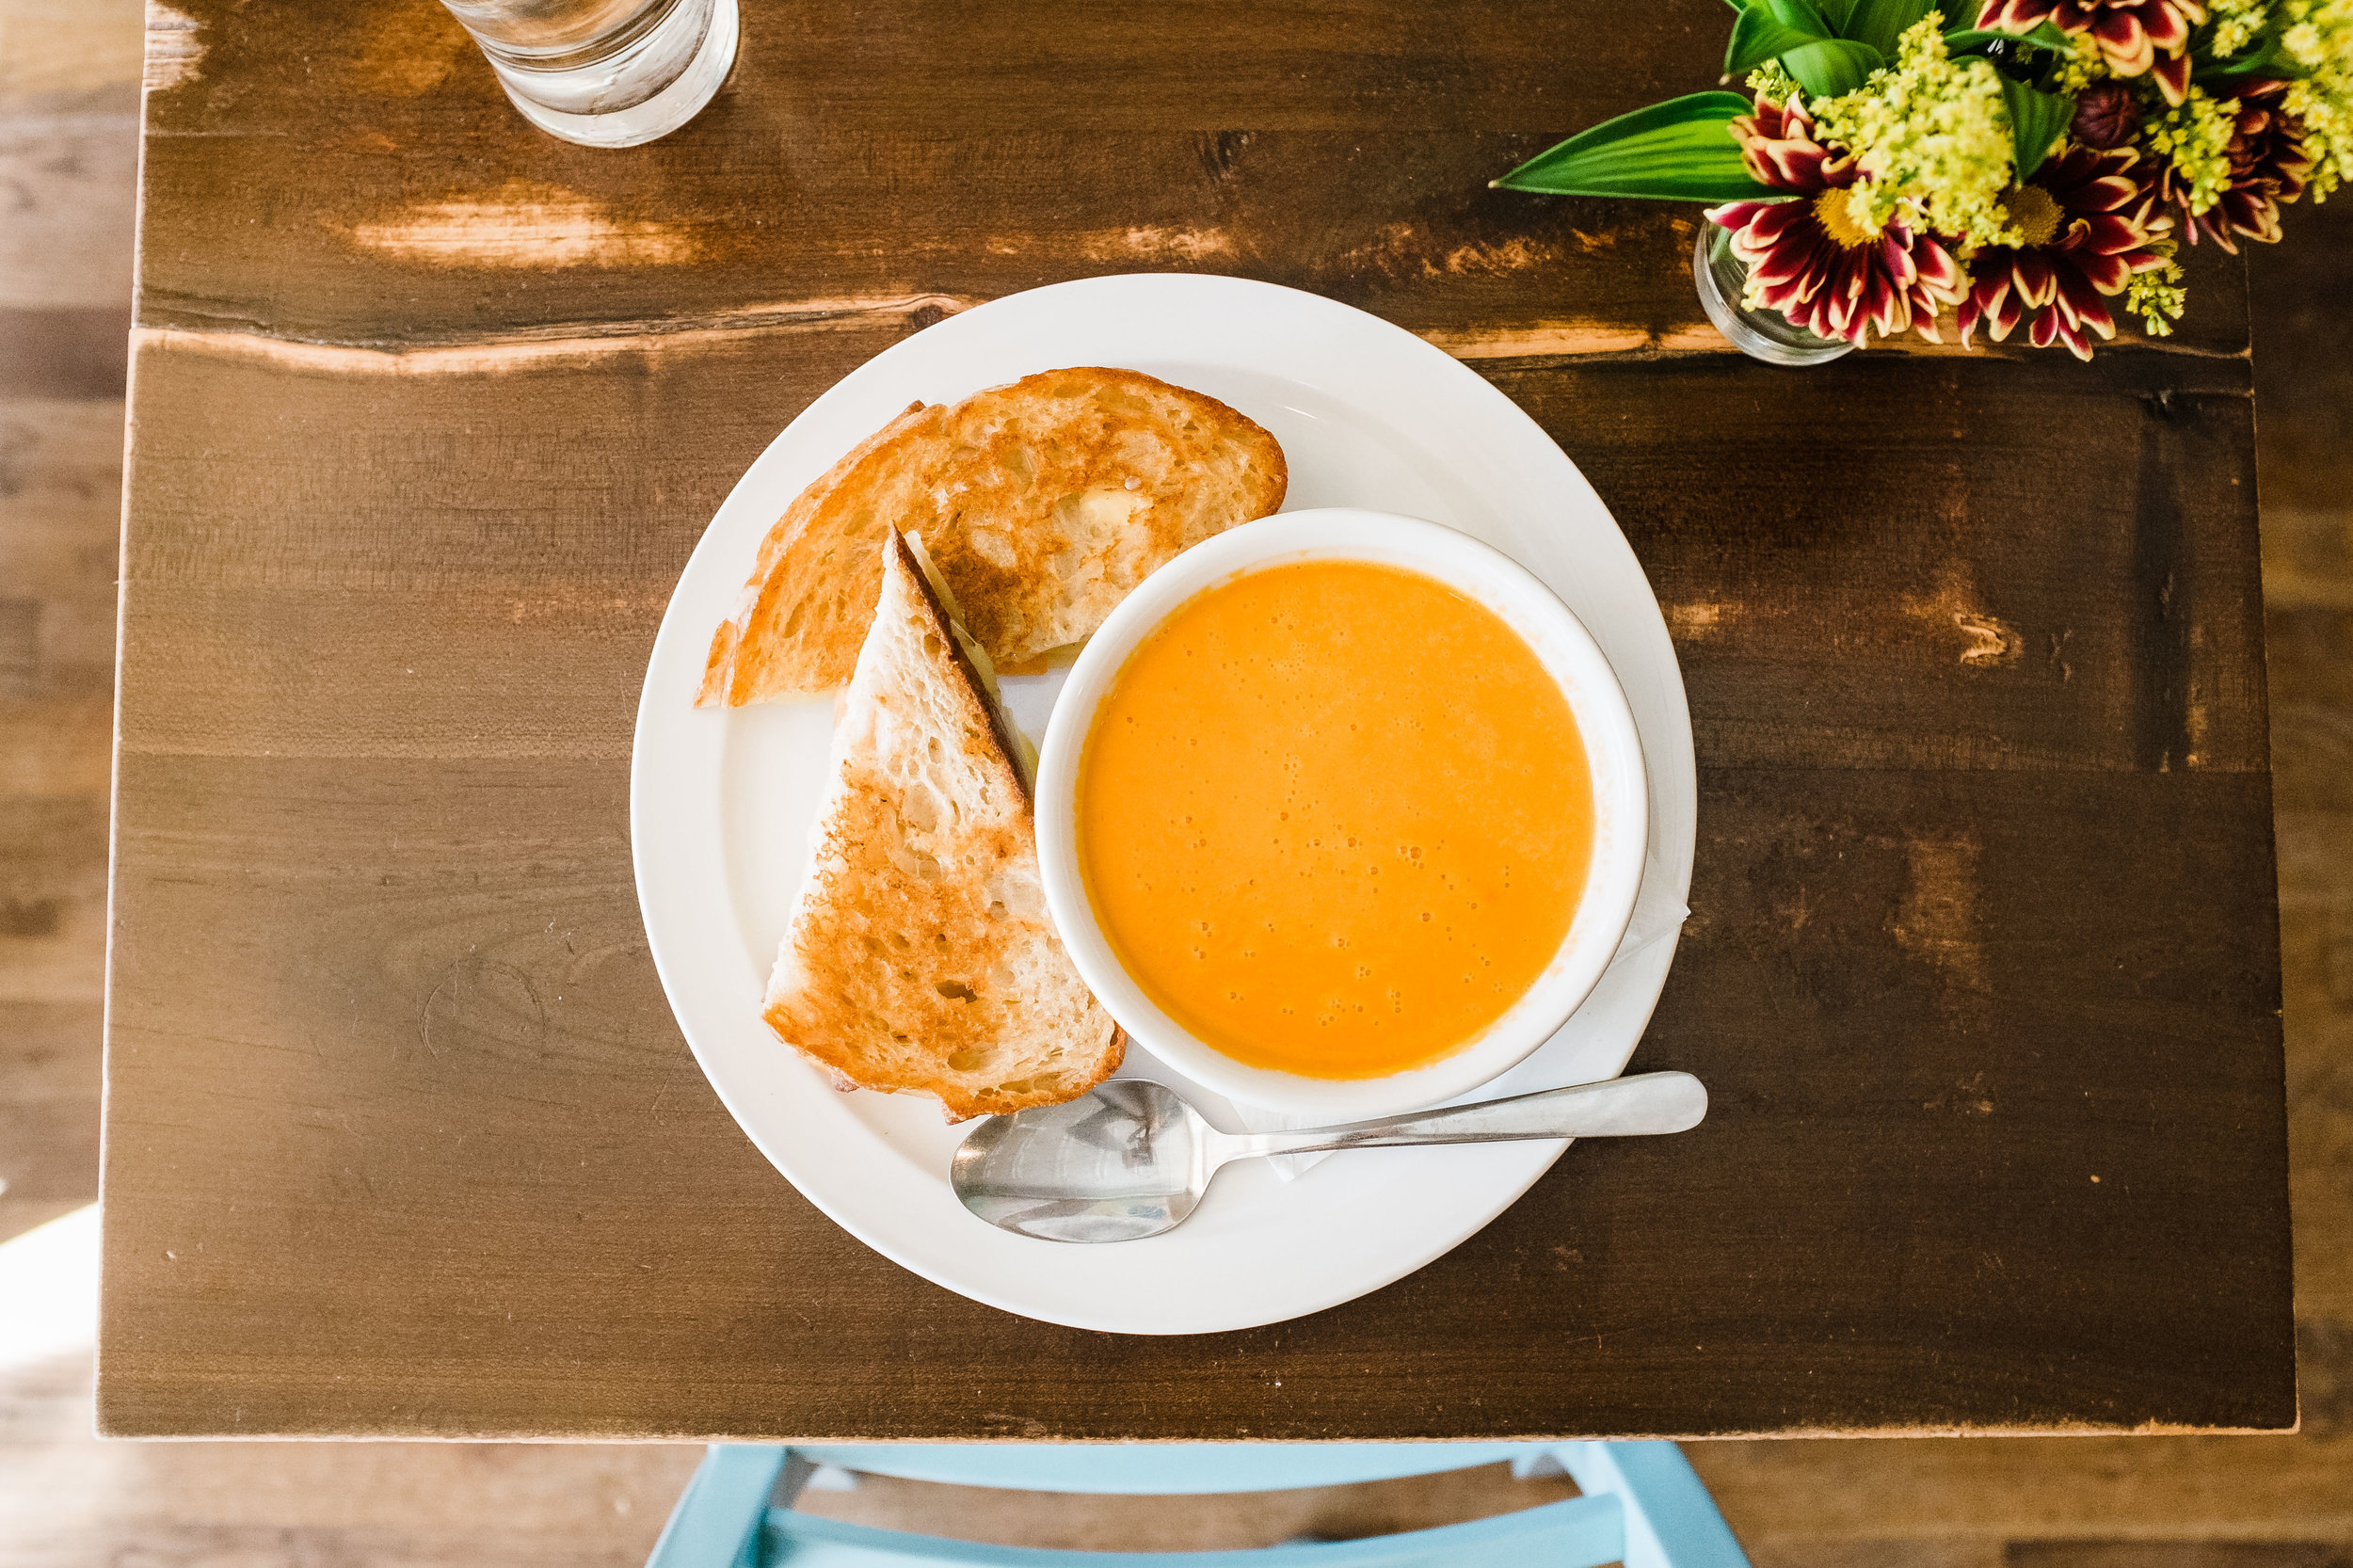 Grilled cheese and tomato and fennel soup at Bite Cafe